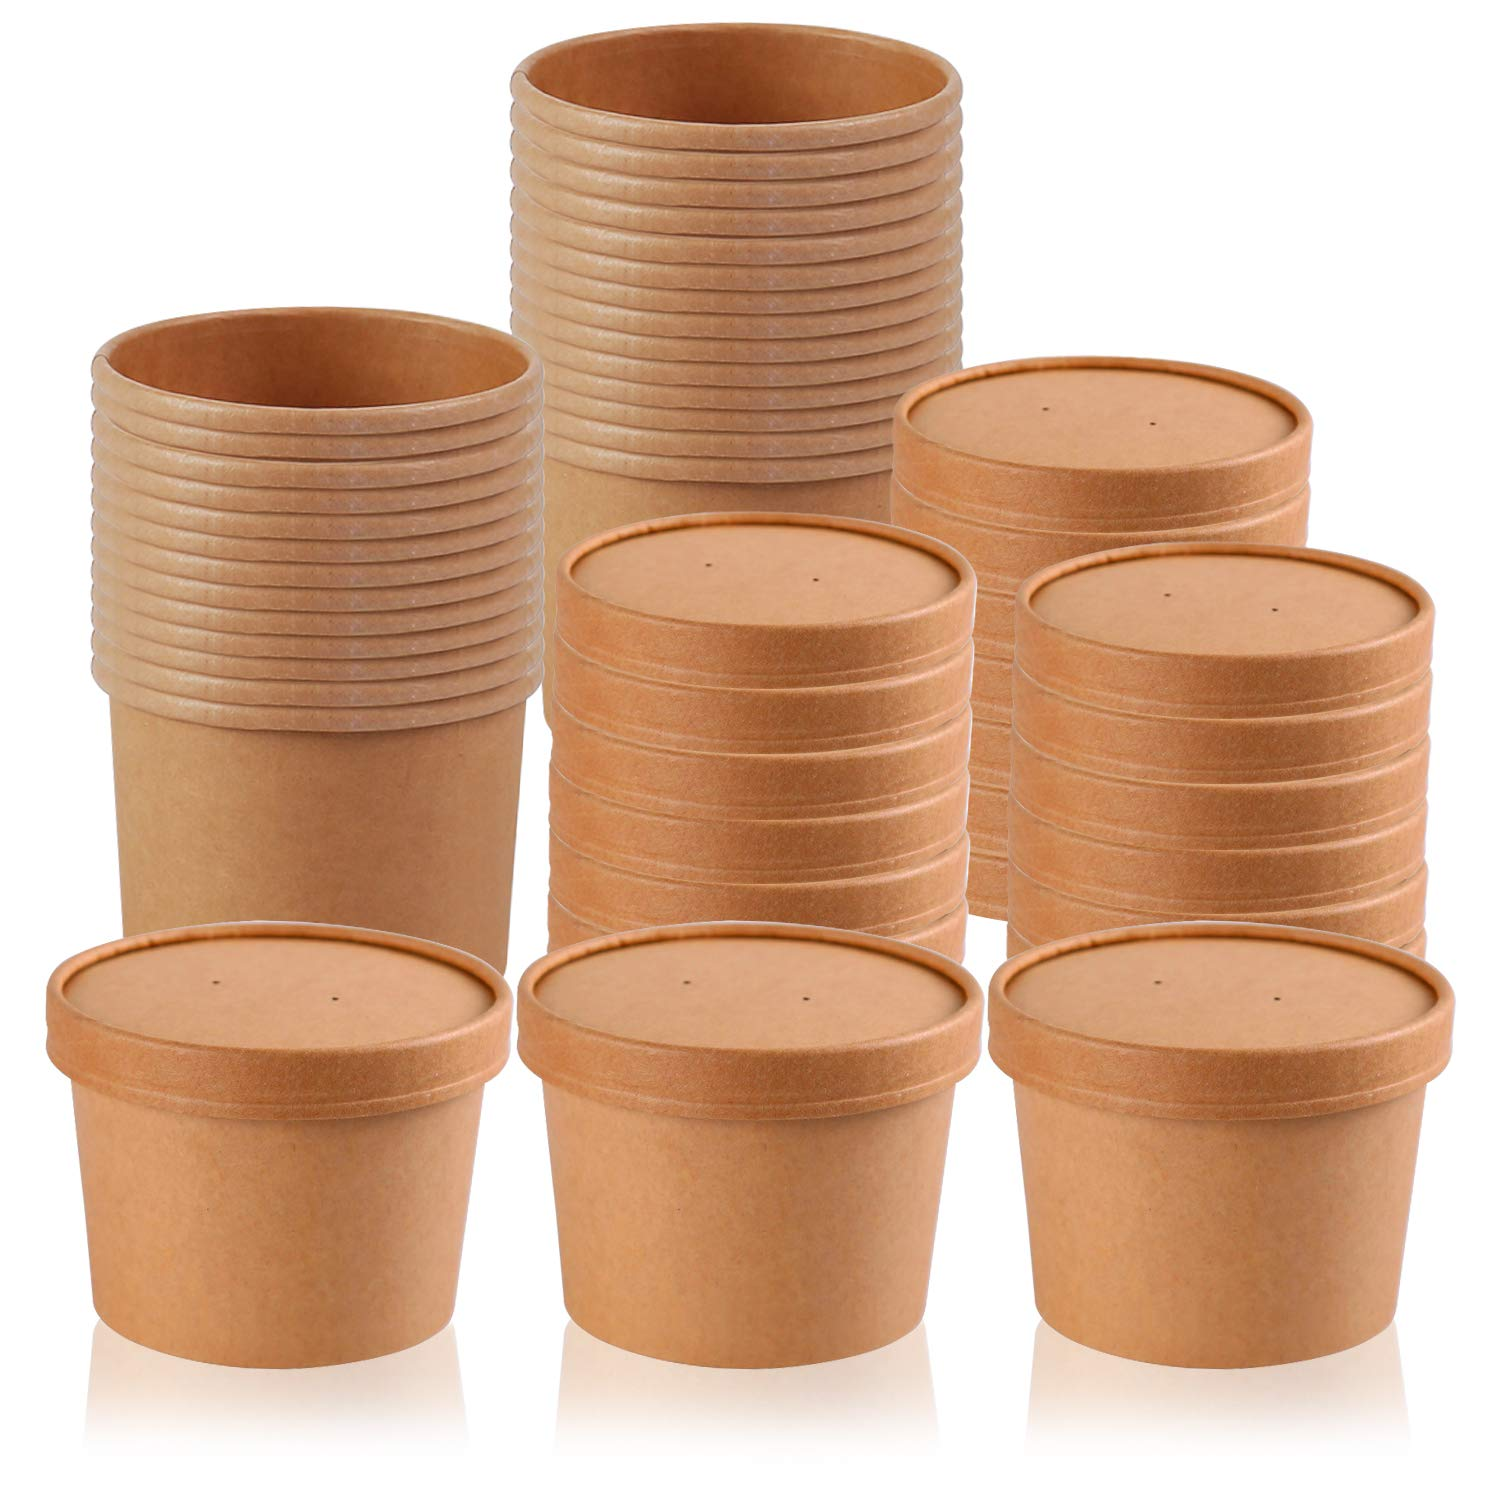 30 Pack 12oz Kraft Compostable Paper Food Cups, Lainrrew Microwavable Soup Cups with Lids Disposable to Go Containers for Restaurants, Delis, Cafes